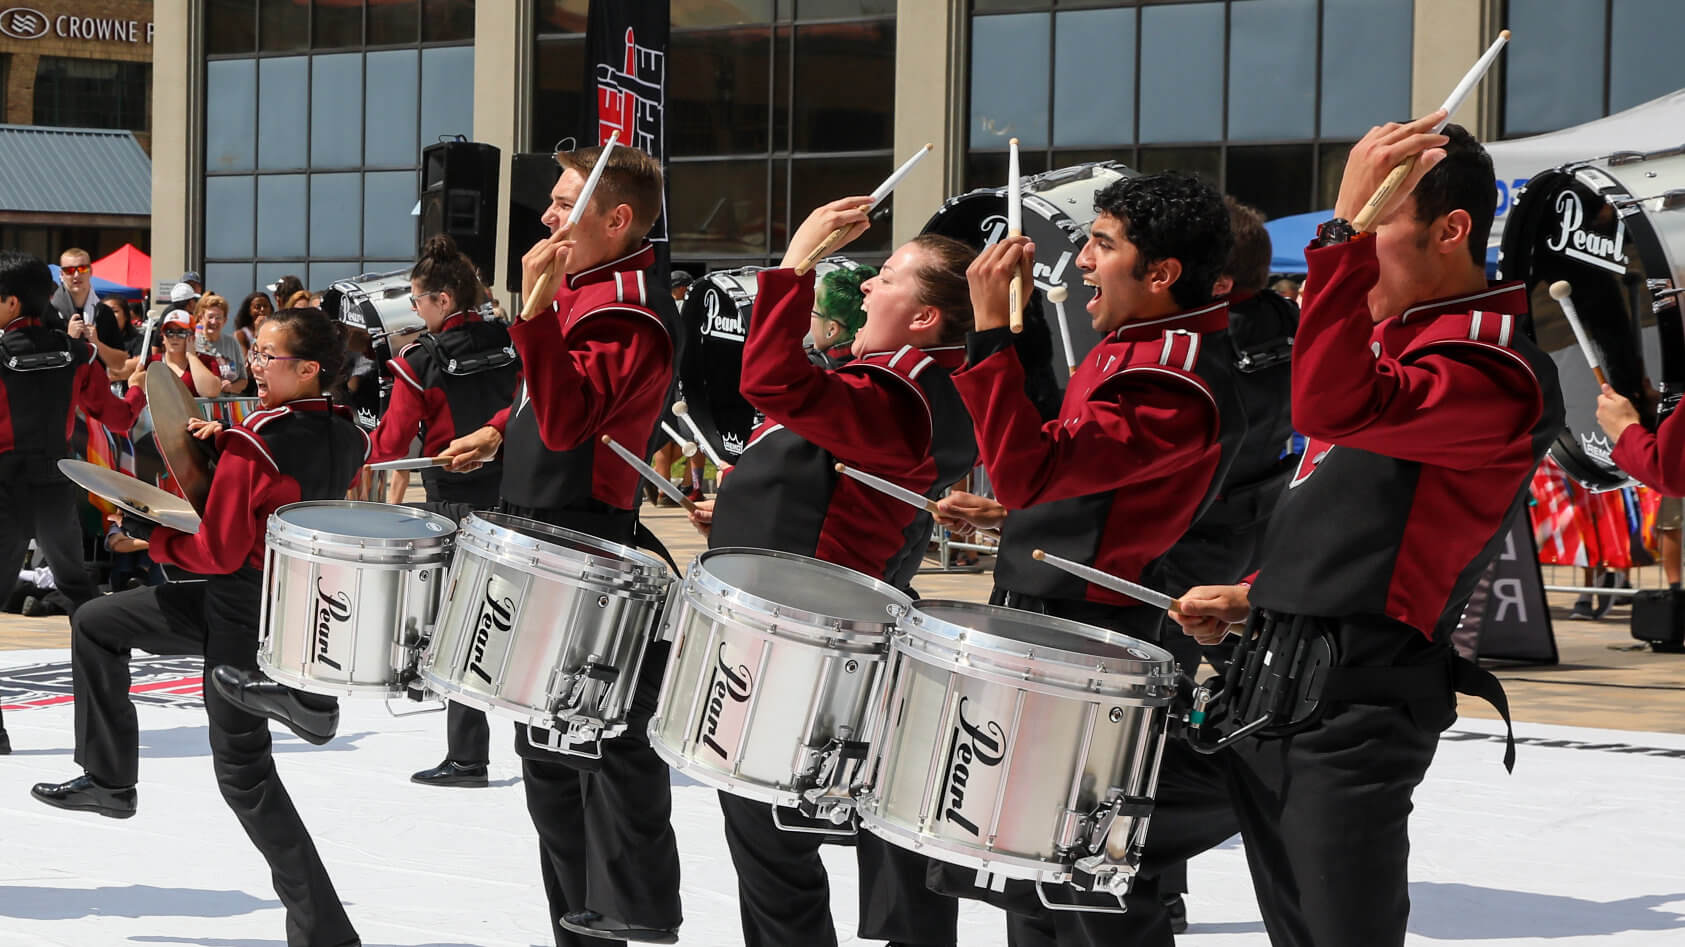 DrumLine Battle: McMaster Marching Band vs. The Diplomats